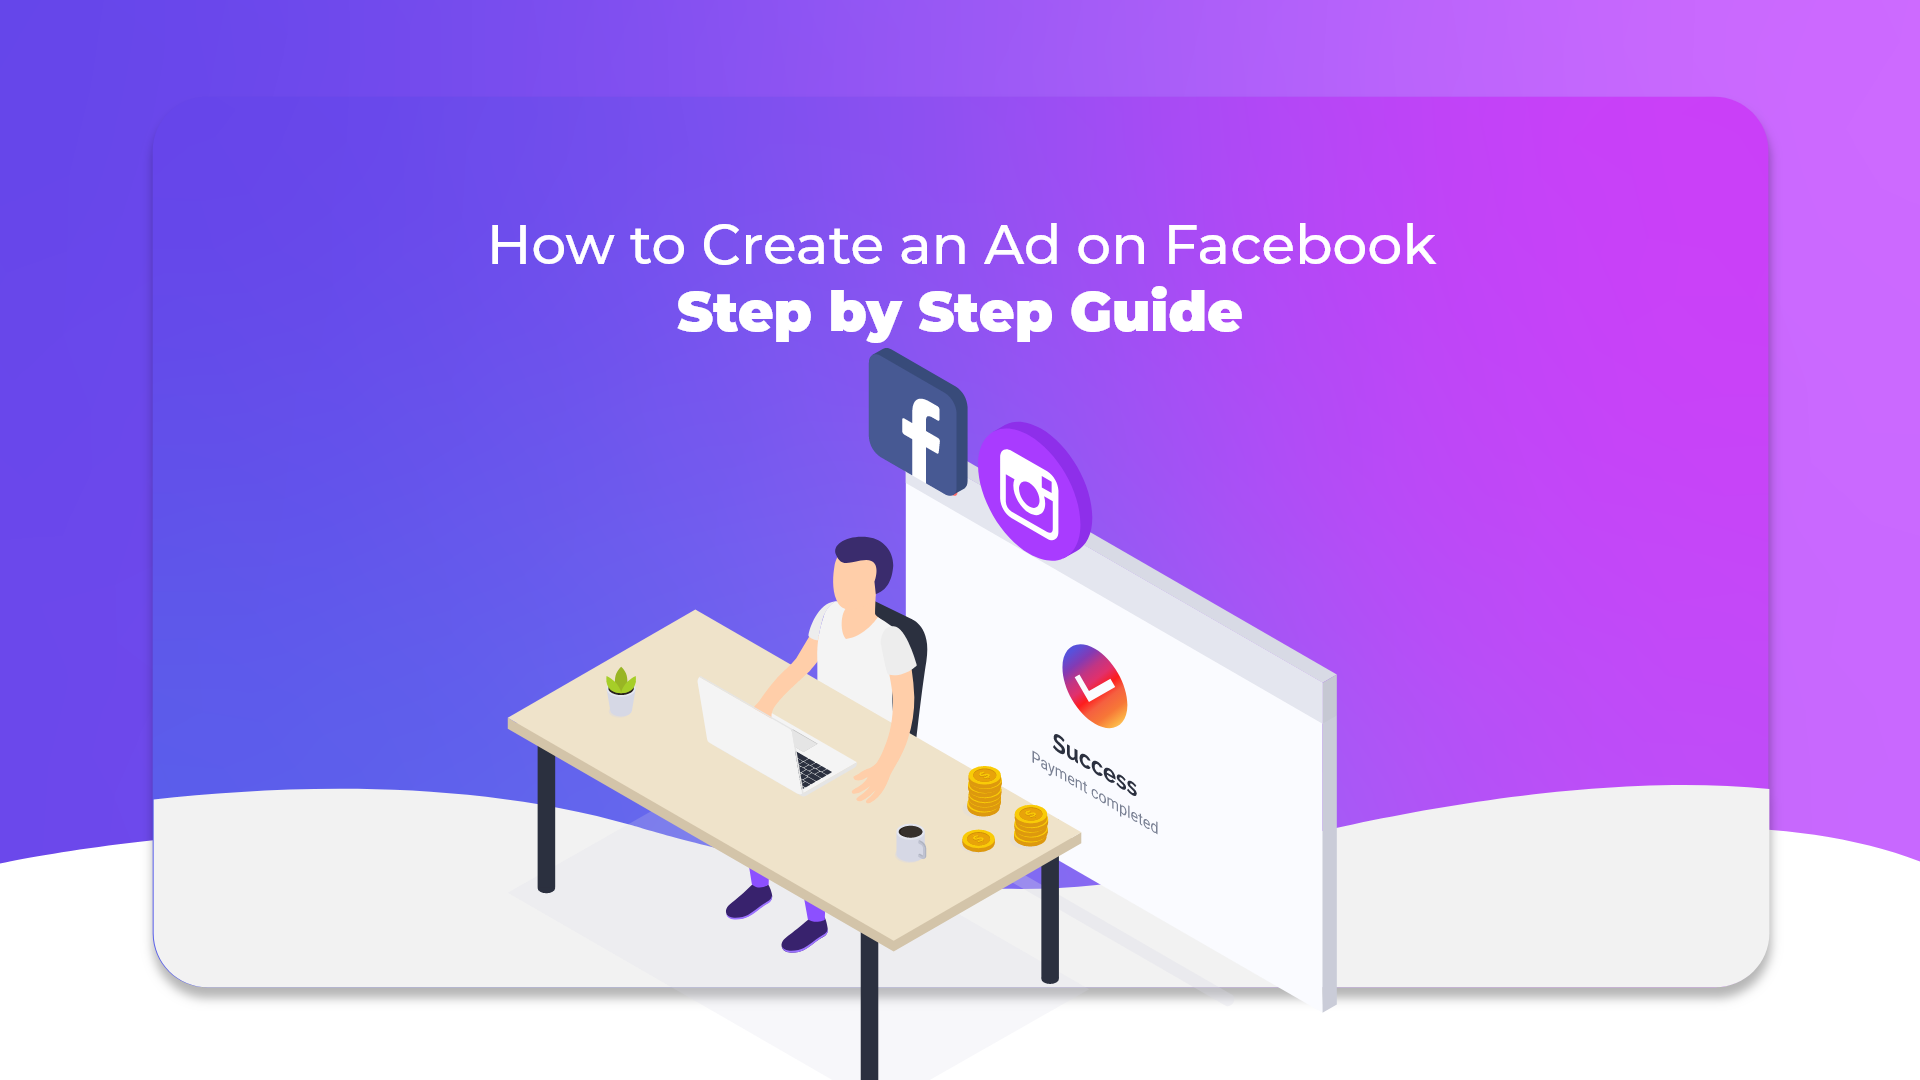 How to Create an Ad on Facebook: Step by Step Guide